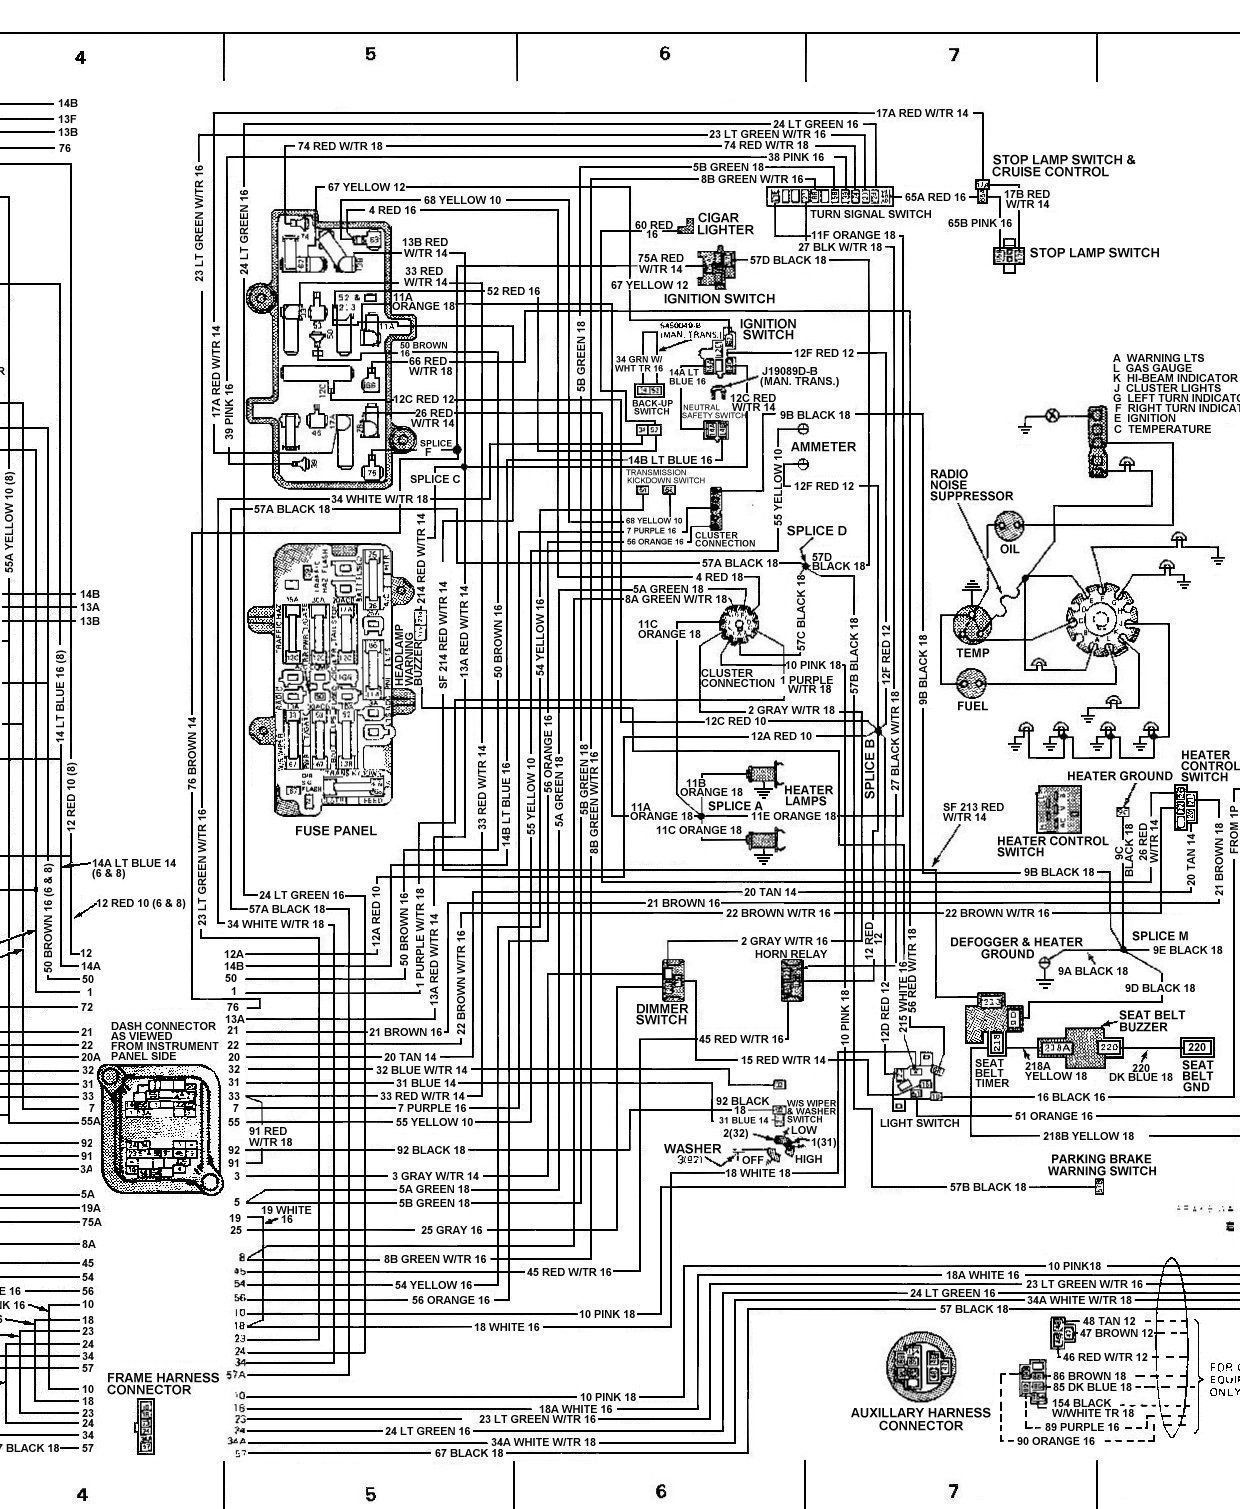 pcm wiring diagram 01 3500 express with Ewrazphoto 1967 Ford Galaxie Windshield on 1976 Bmw 2002 Fuse Box Diagram as well Engine Ground Wire Location 2003 Chevy Tahoe moreover Showthread moreover 5ekl0 Gmc K2500 Sierra 4x4 Gmc Truck 1988 4x4 Sierra 2500 Gas furthermore .